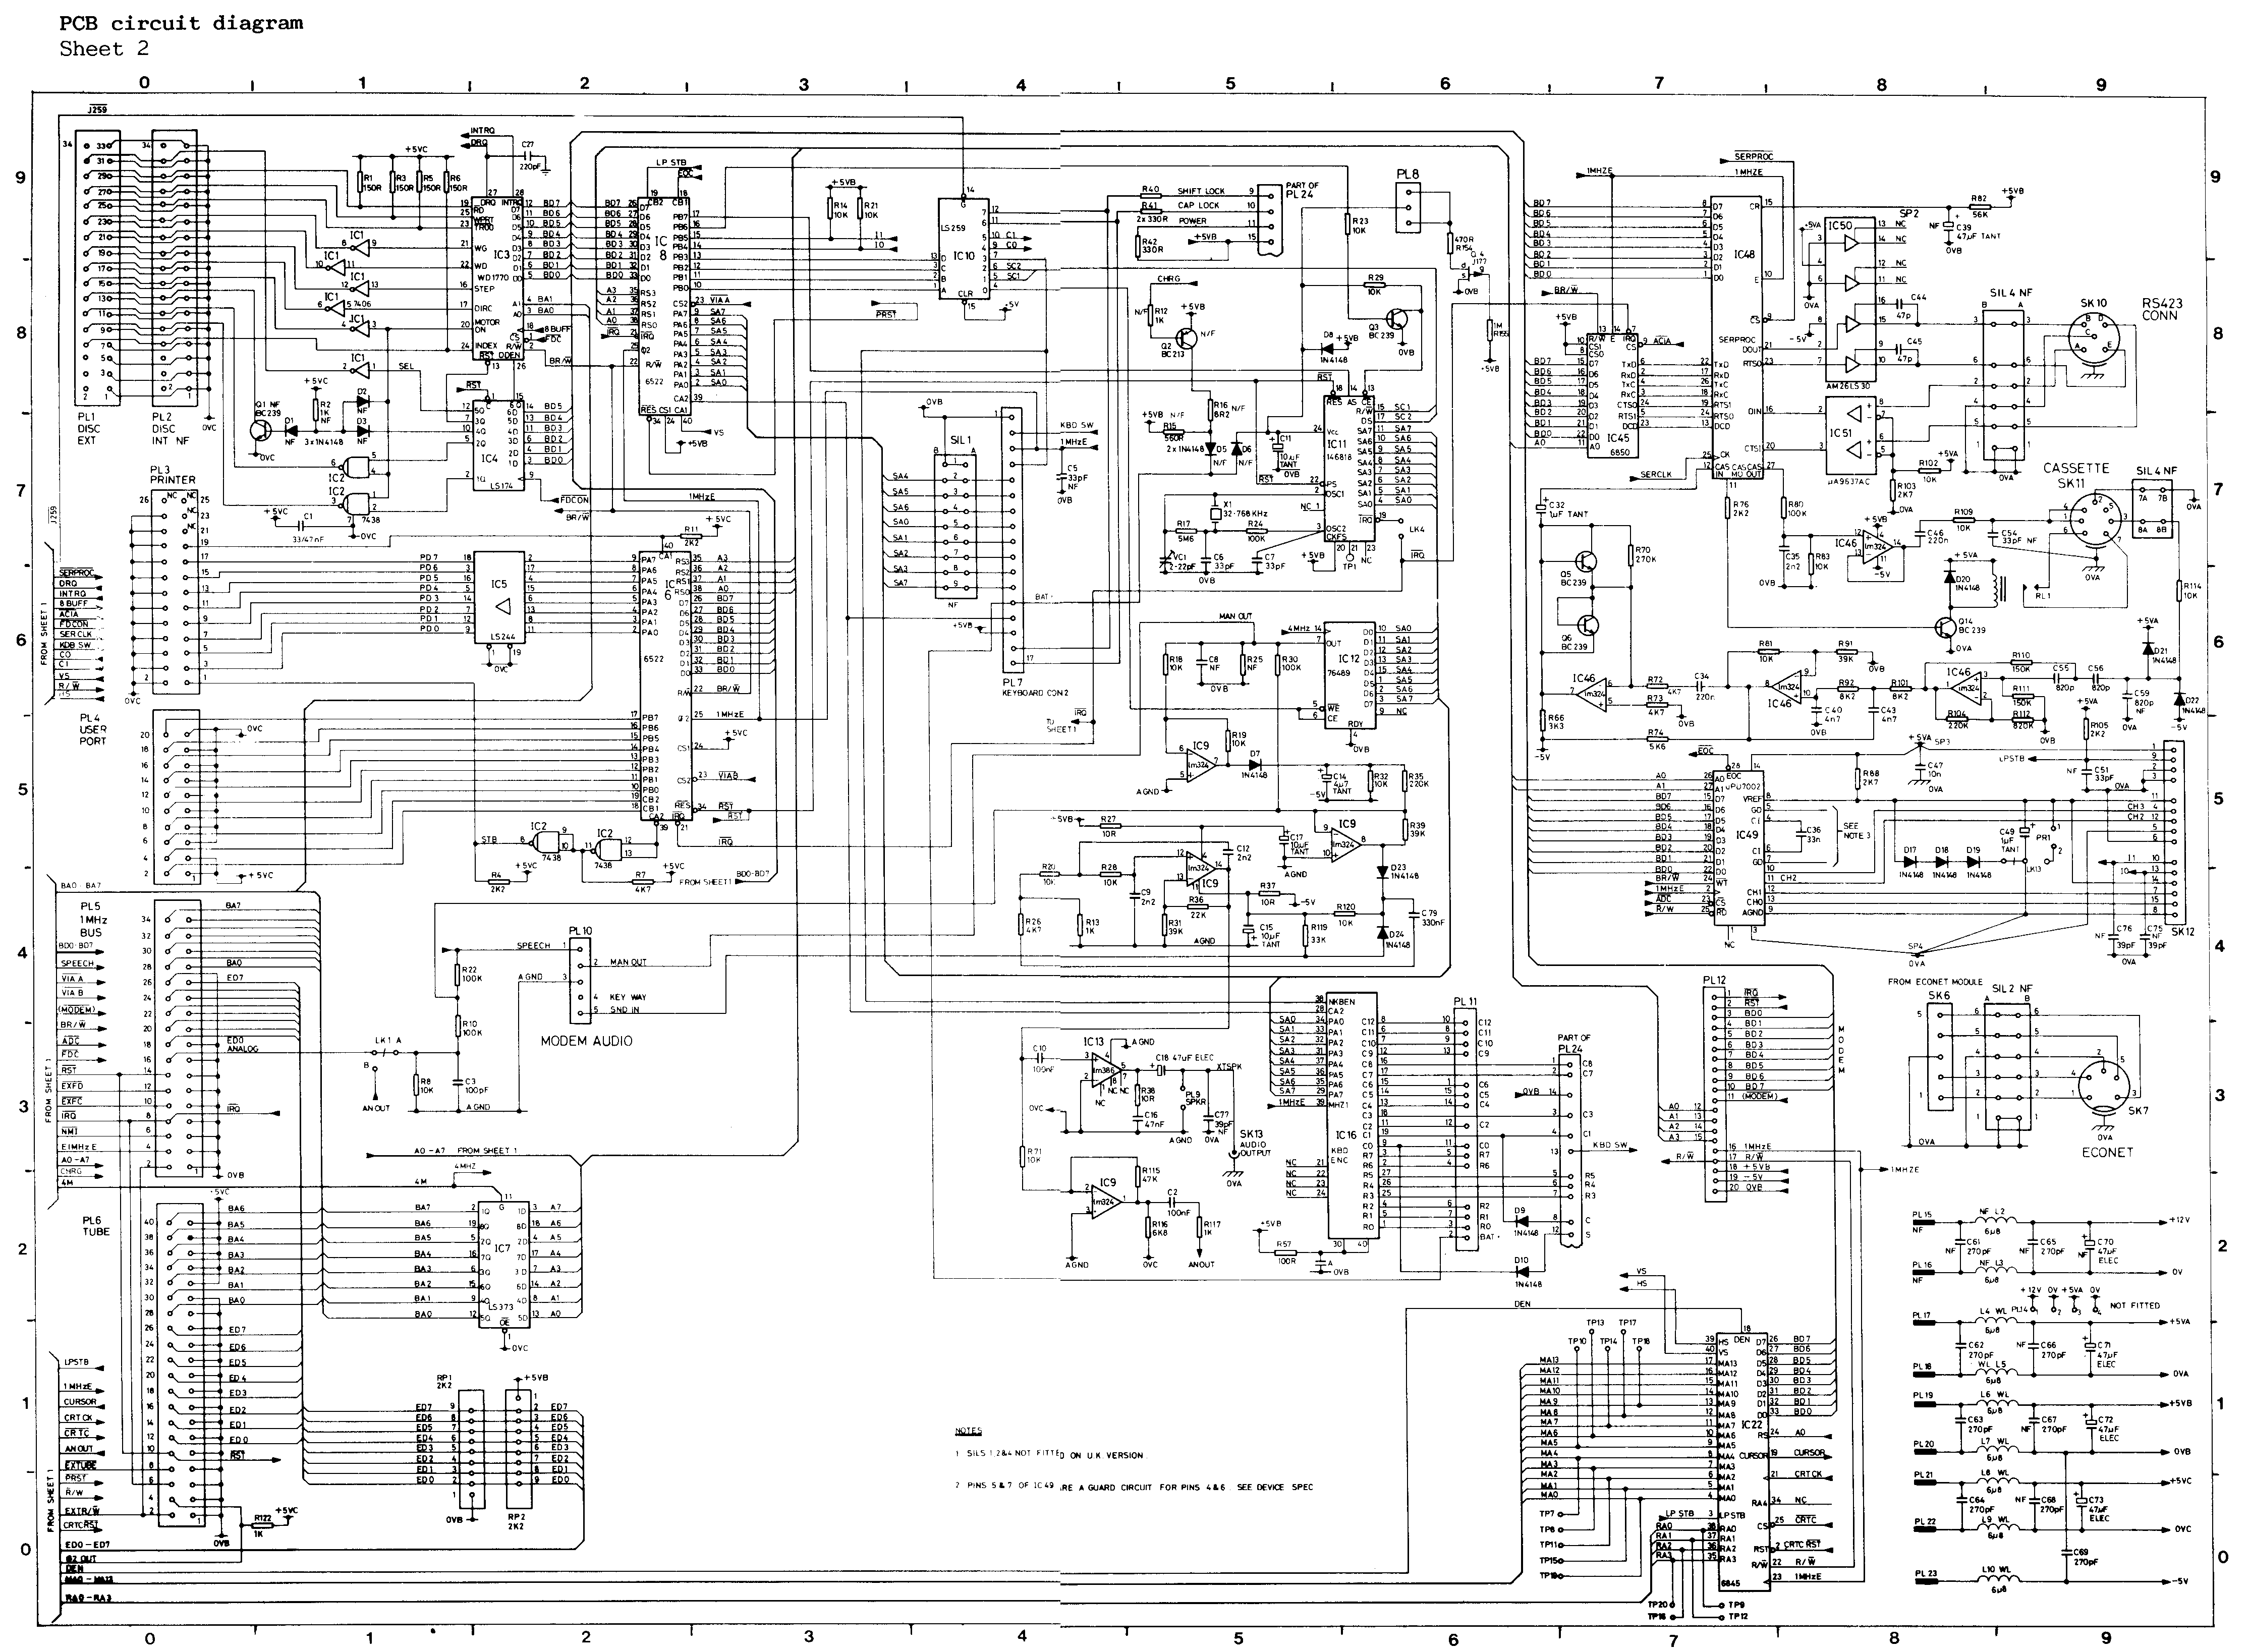 microcomputer - documents,Wiring diagram,Bbc Model B Circuit Diagram